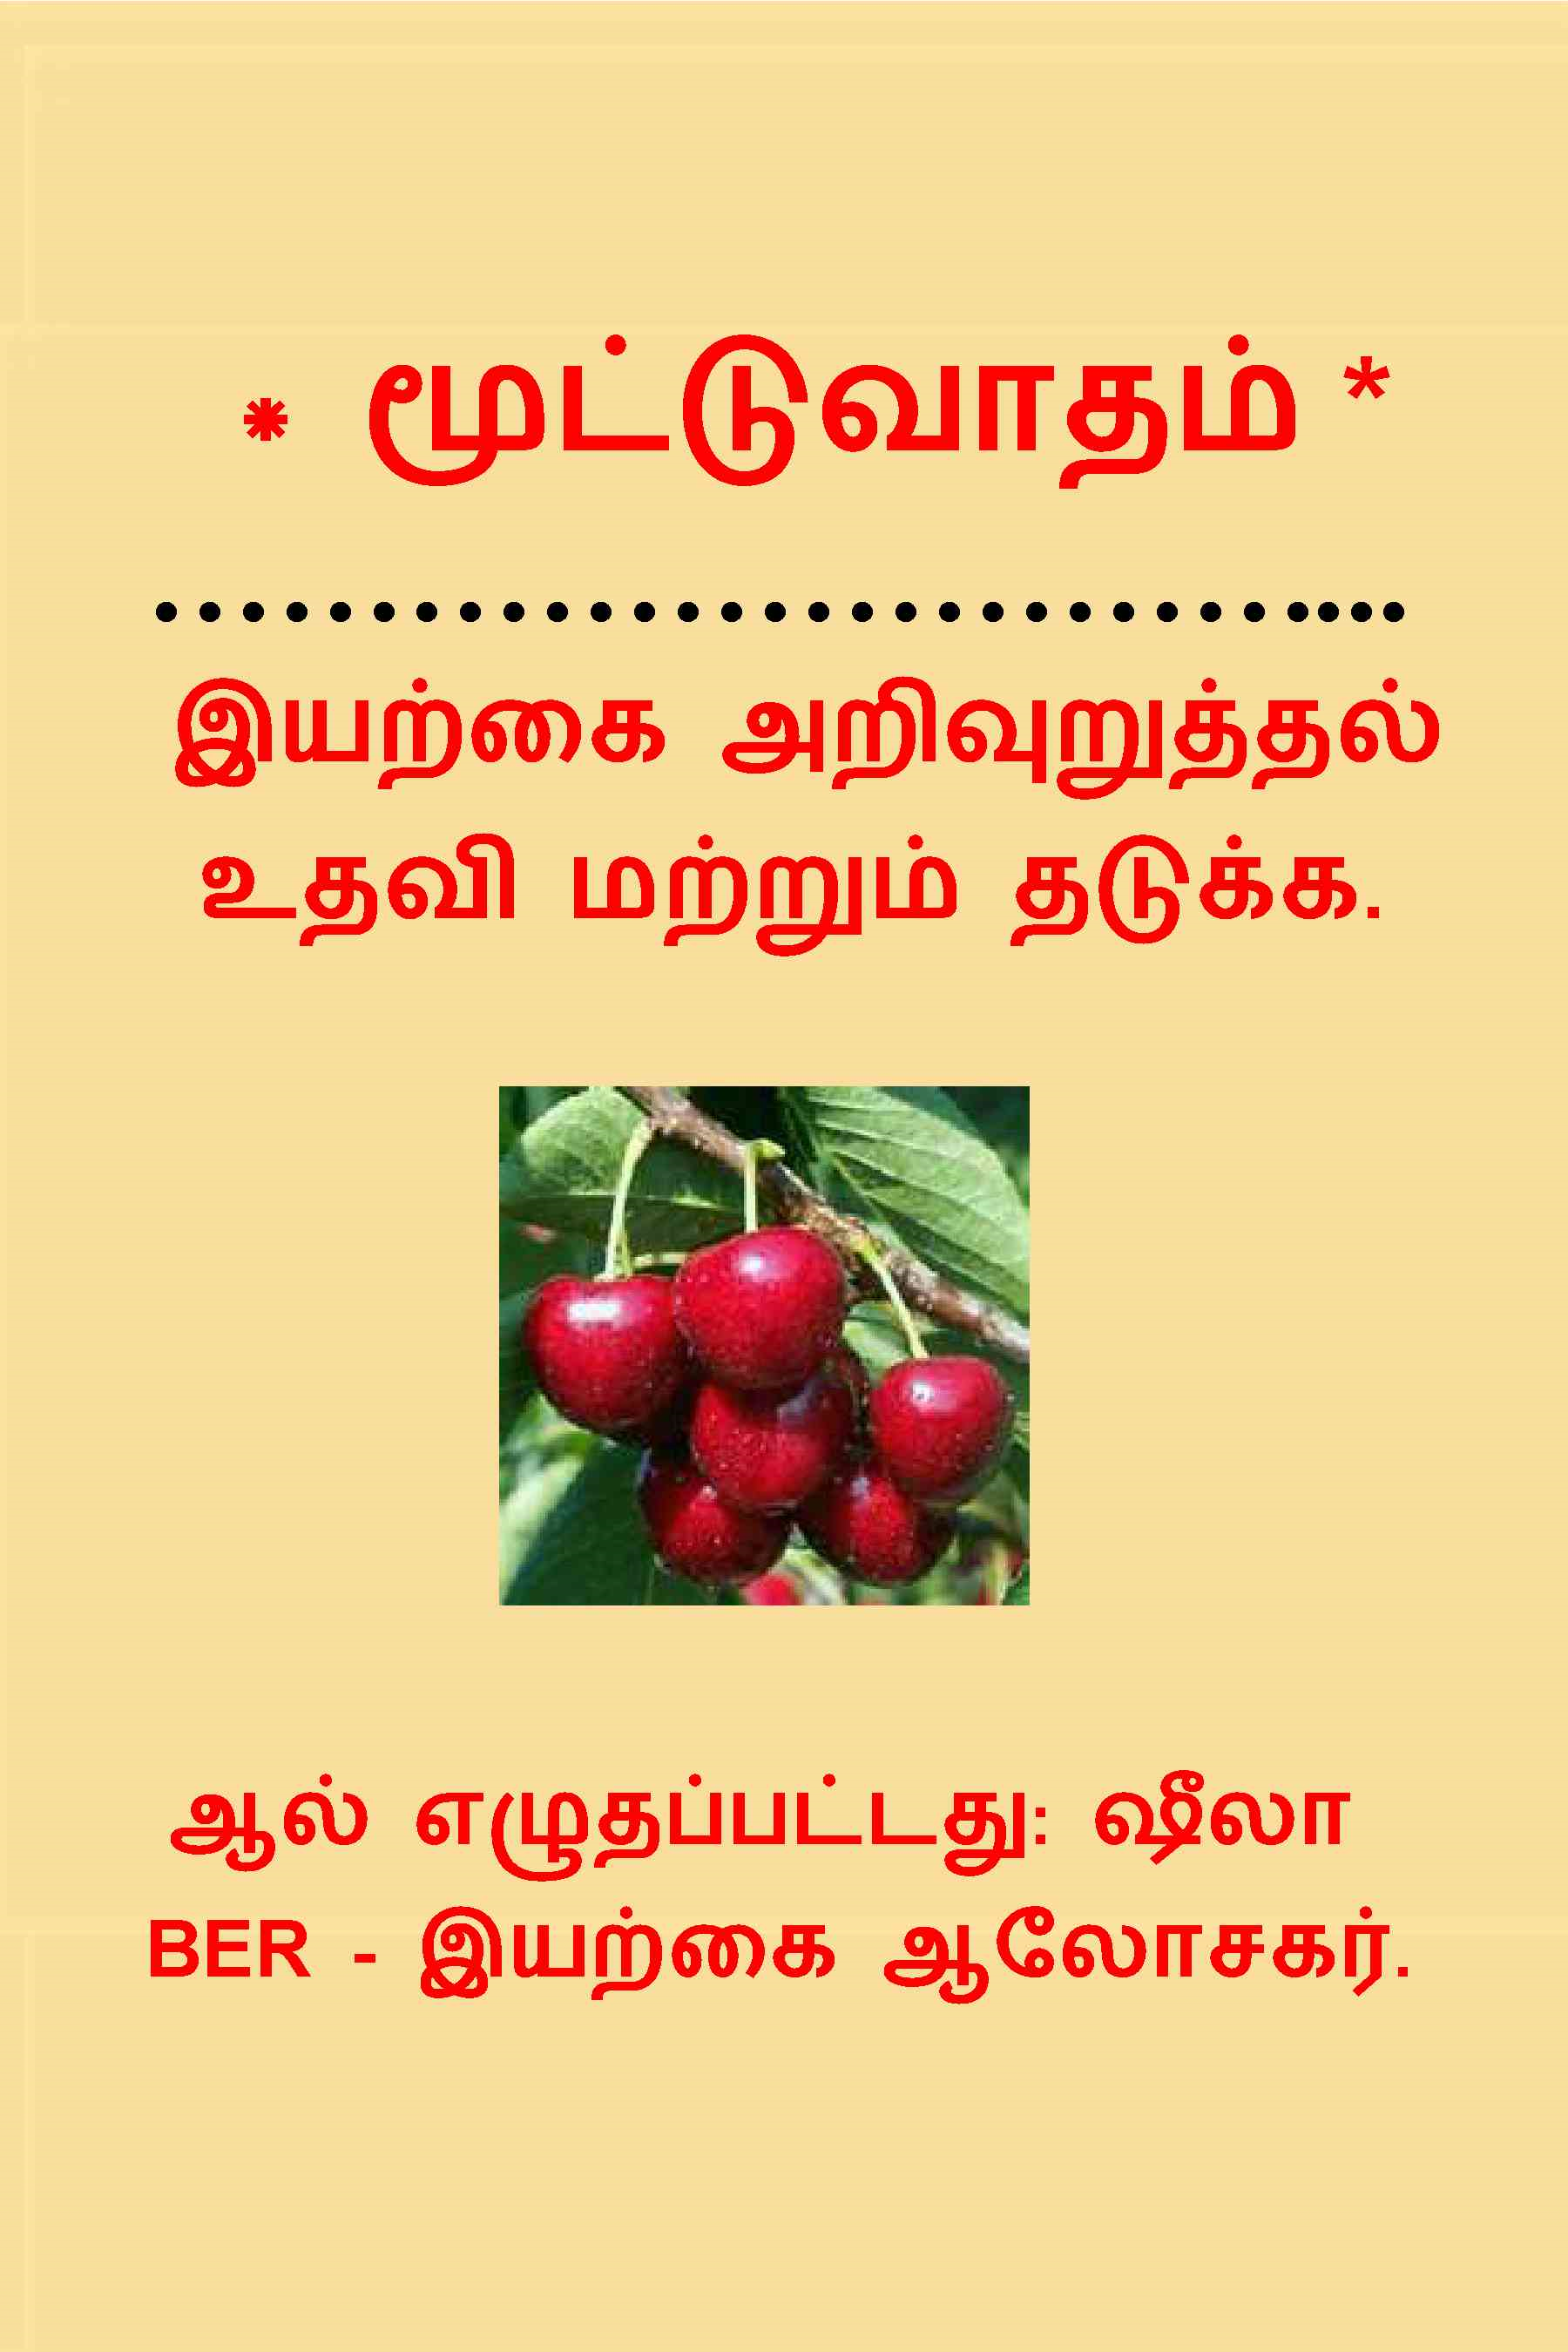 * ARTHRITIS * NATUROPATHIC ADVICE TO HELP and PREVENT. TAMIL Edition. Written by SHEILA BER.